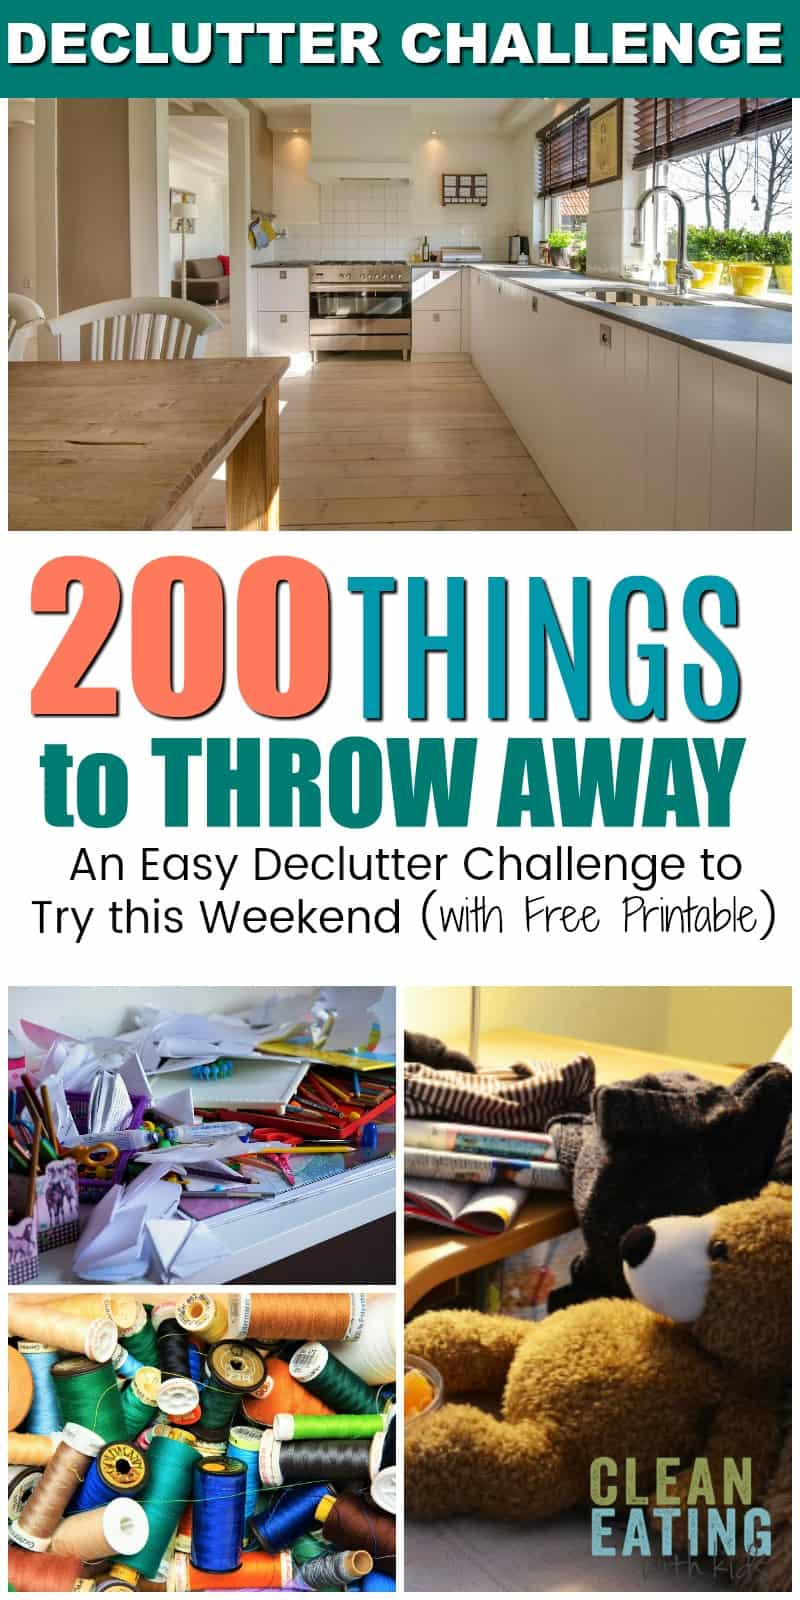 Easy Declutter Challenge: 200 Things to throw away (plus free printable)